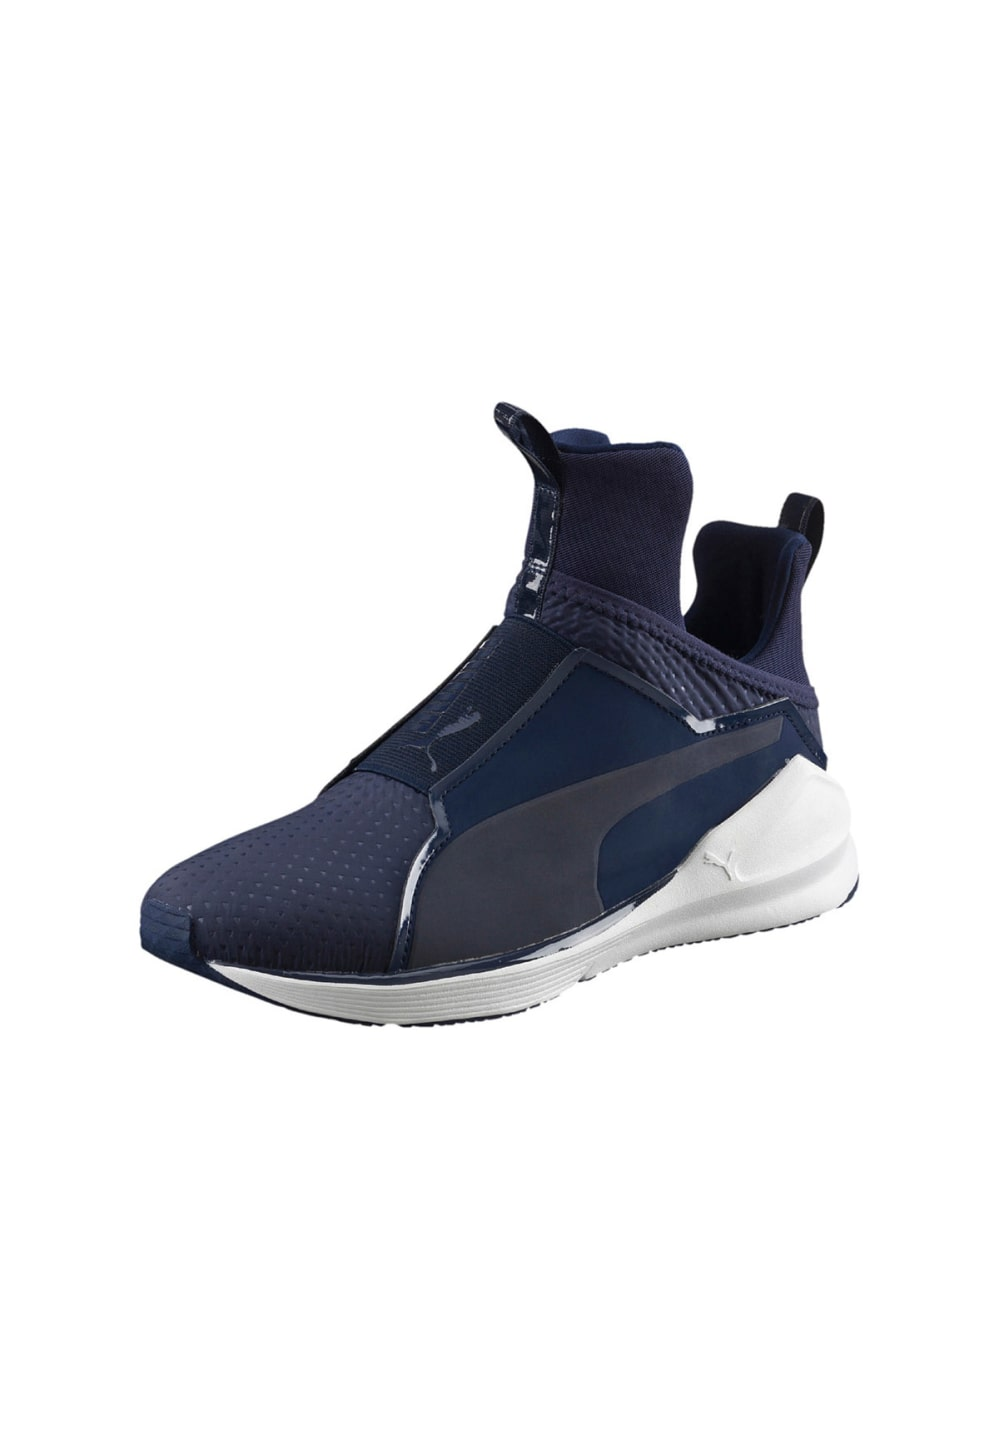 21run Homme Quilted Fierce Bleu Fitness Chaussures Puma Pour wg6fxqOzz